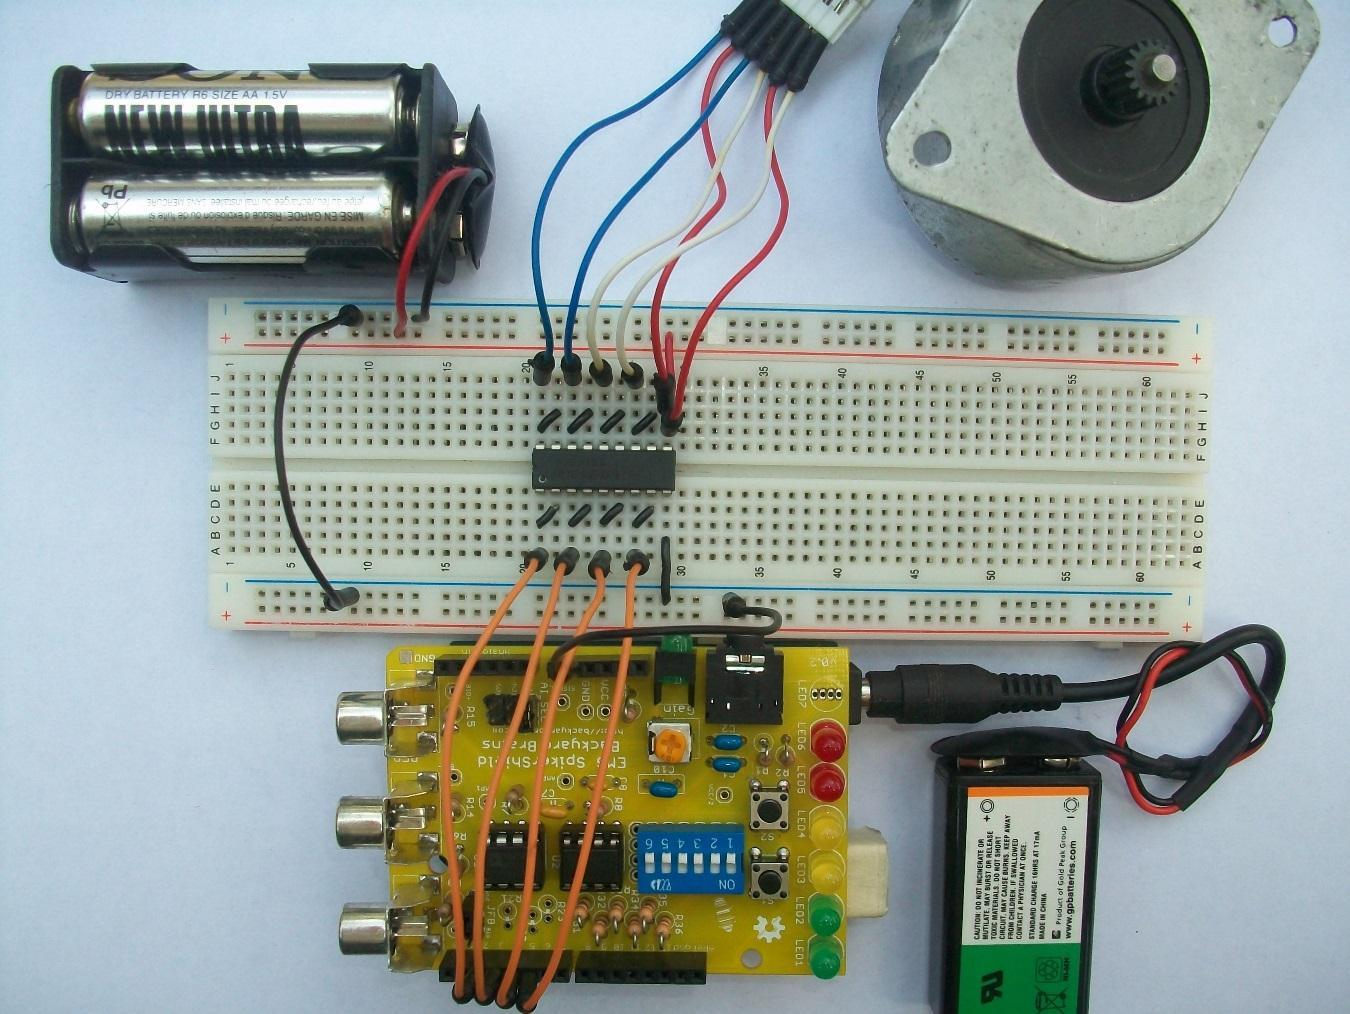 Experiment Controlling A Stepper Motor With Your Muscles Circuit Of The Common Electric Motor2 Automotivecircuit To Finish Up We Load Program Arduino Now Can Finally Test It Diagram